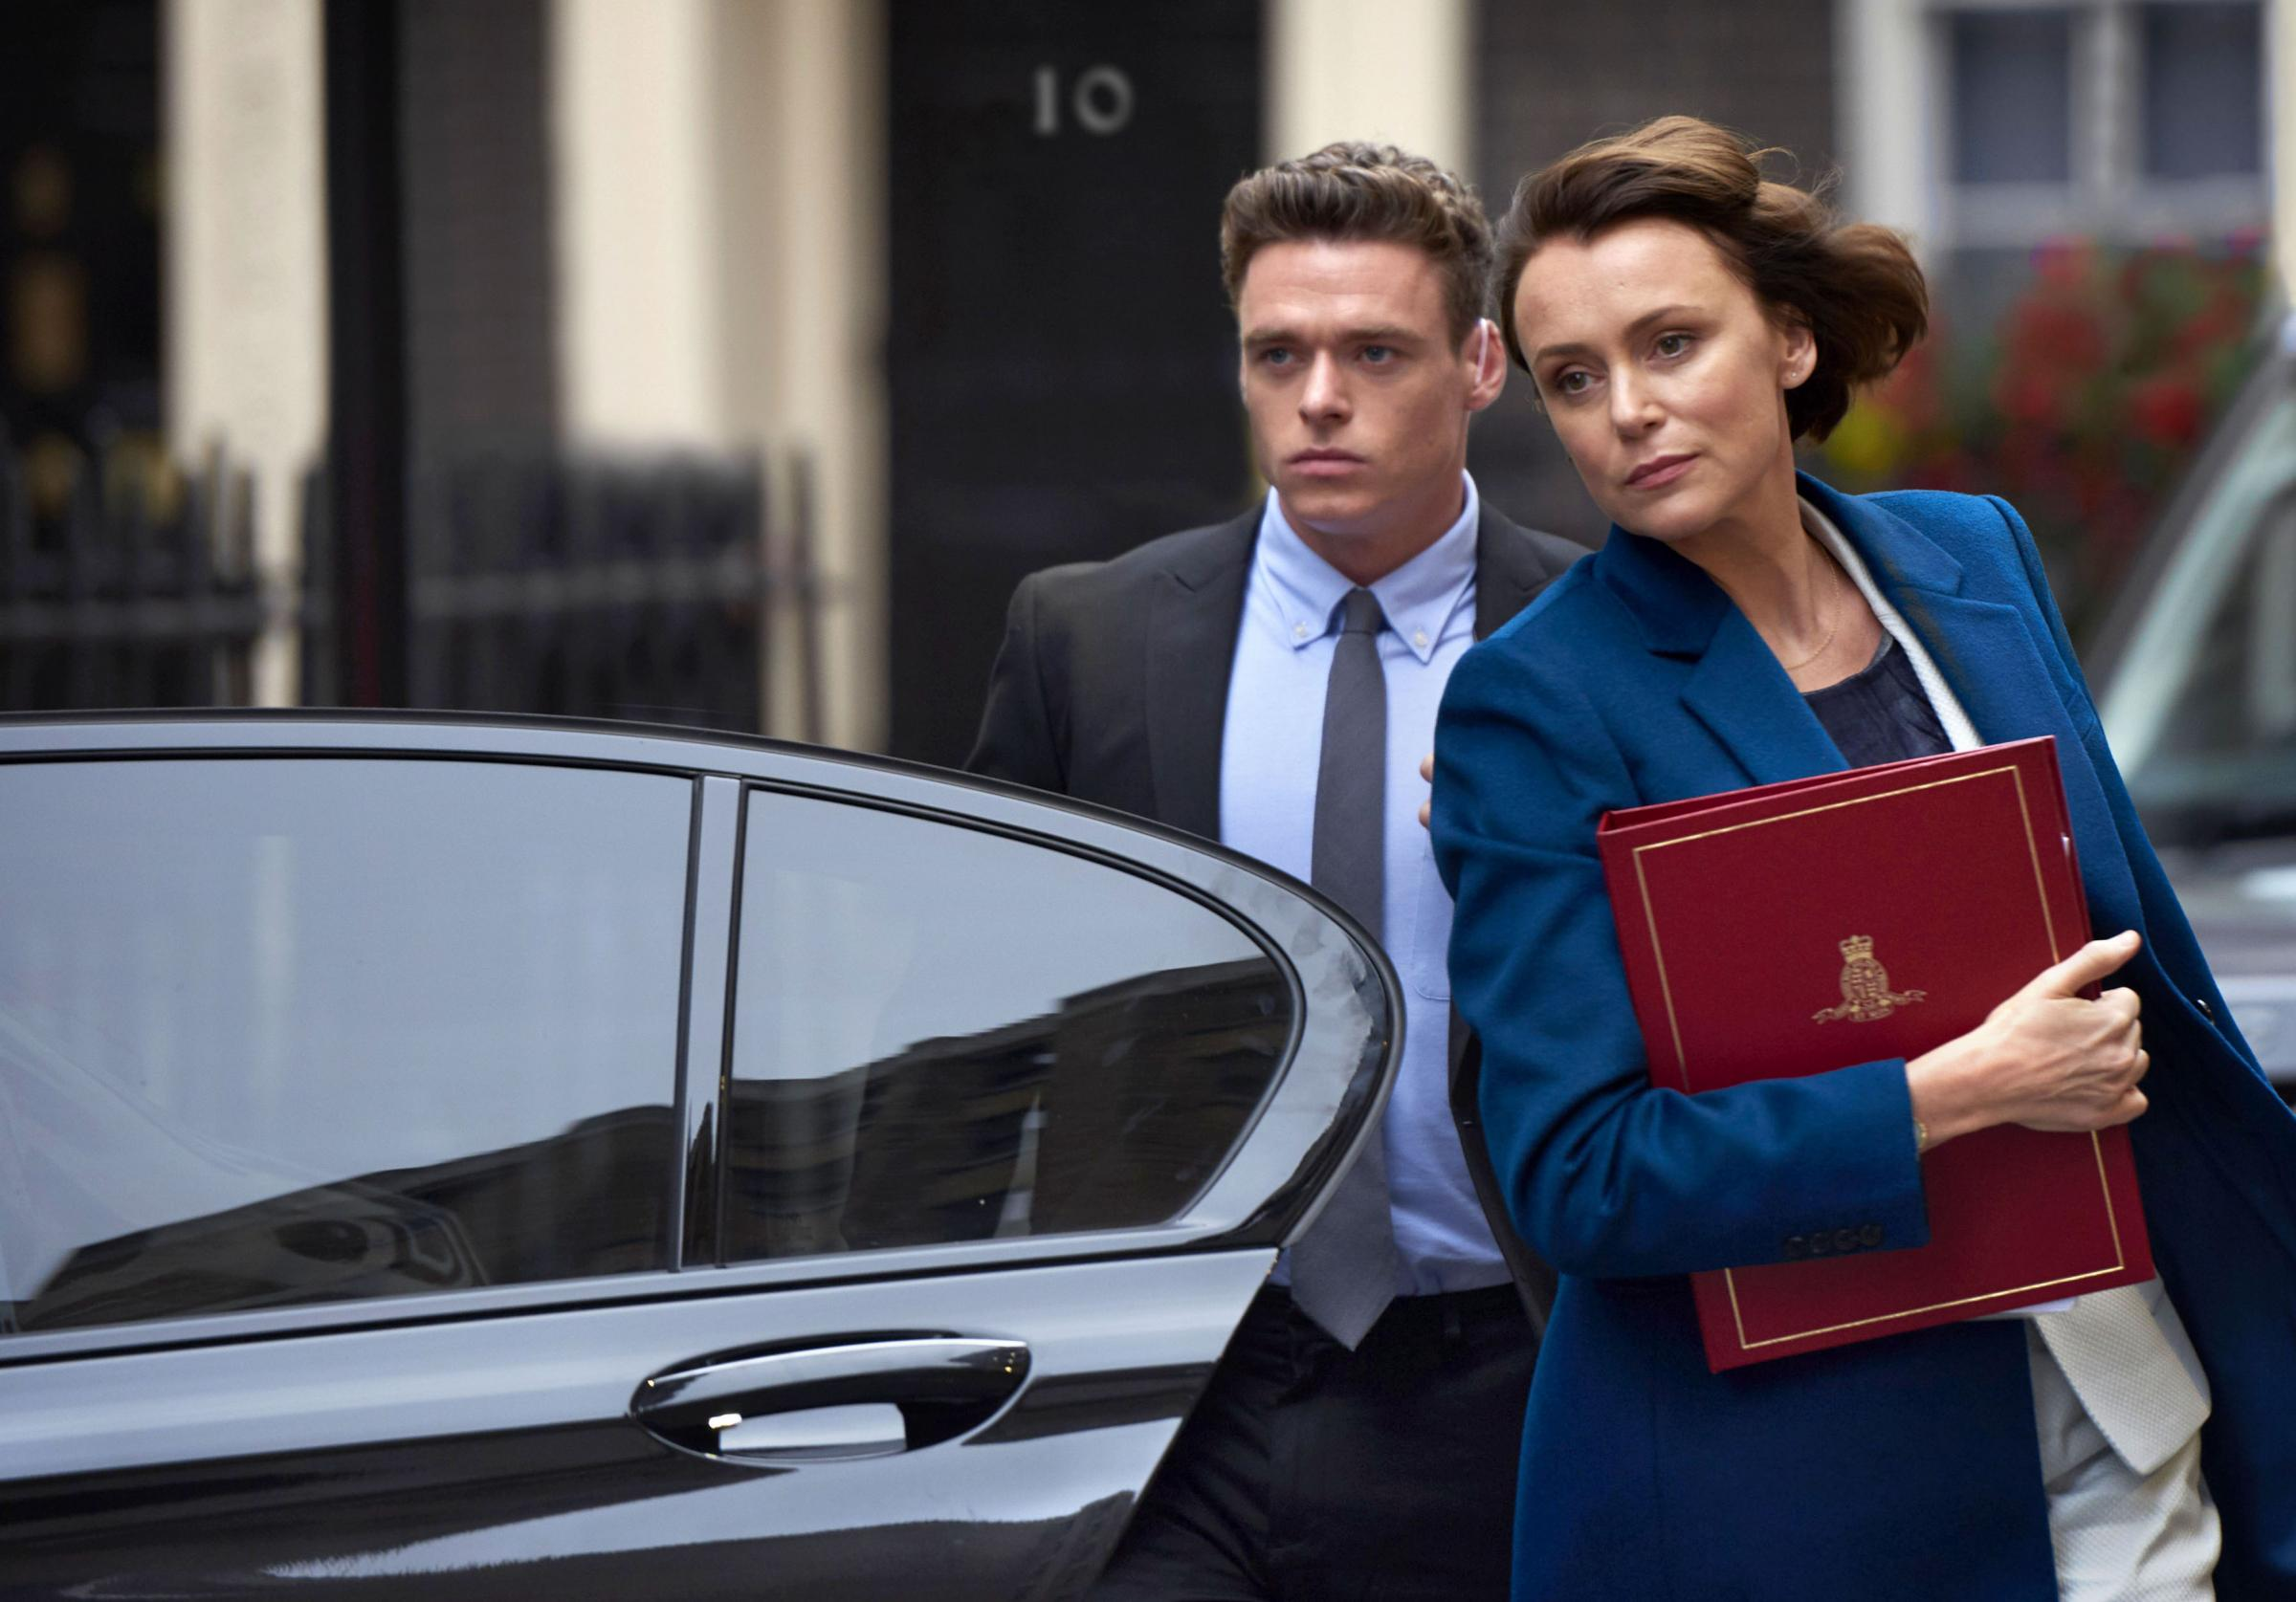 Keeley Hawes's character in Bodyguard wants to increase police surveillance powers